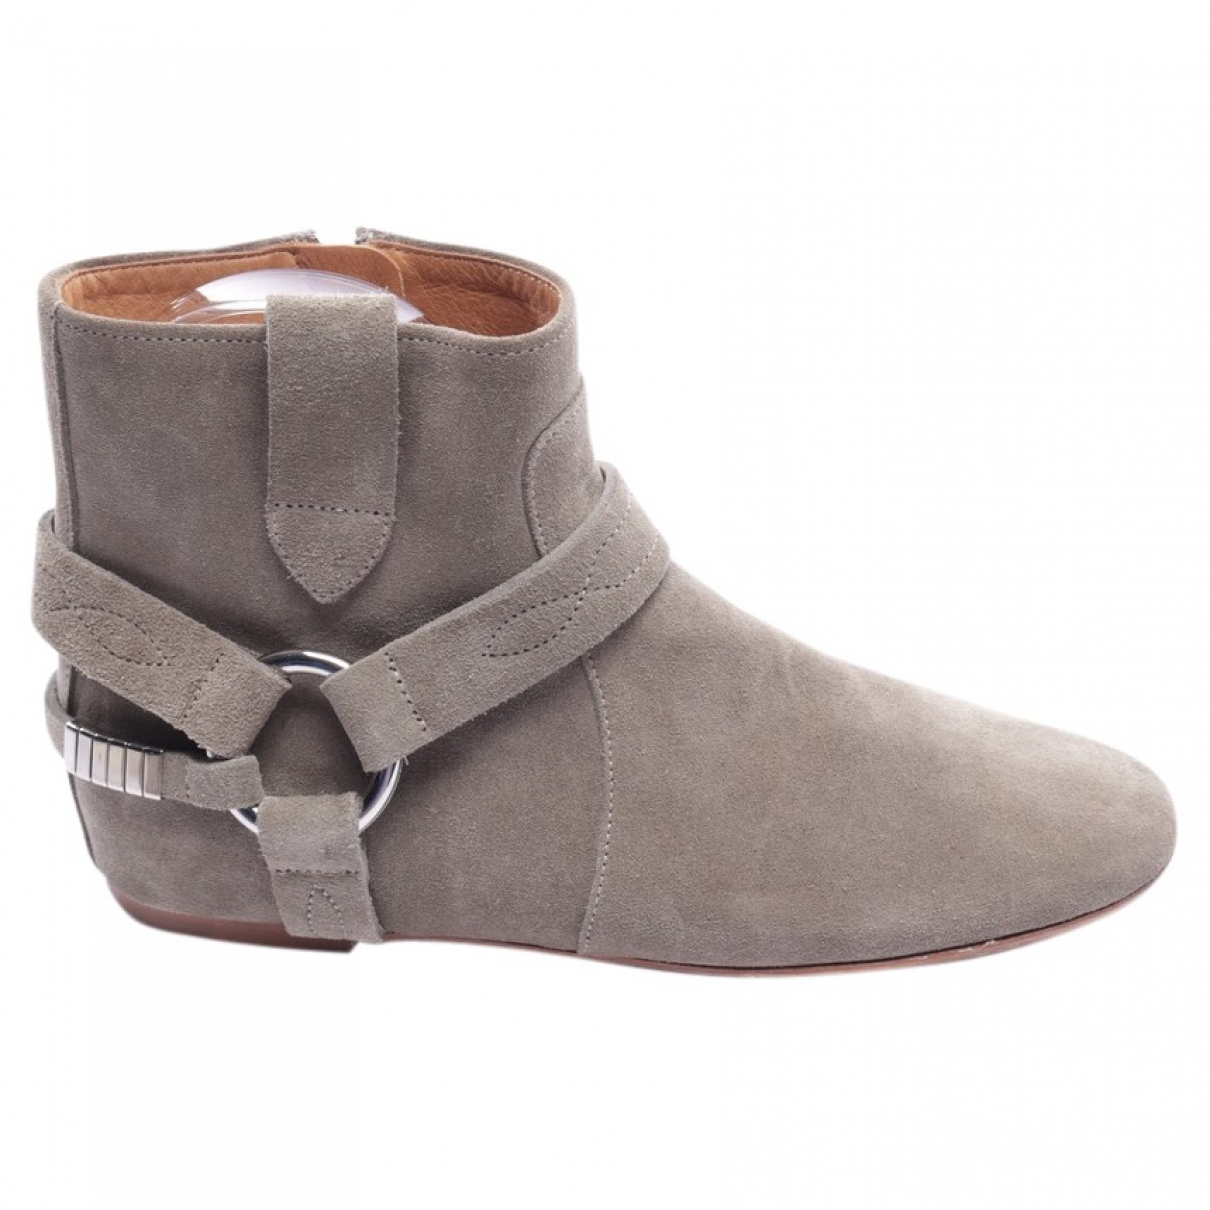 Isabel Marant Etoile \N Green Leather Ankle boots for Women 37 EU